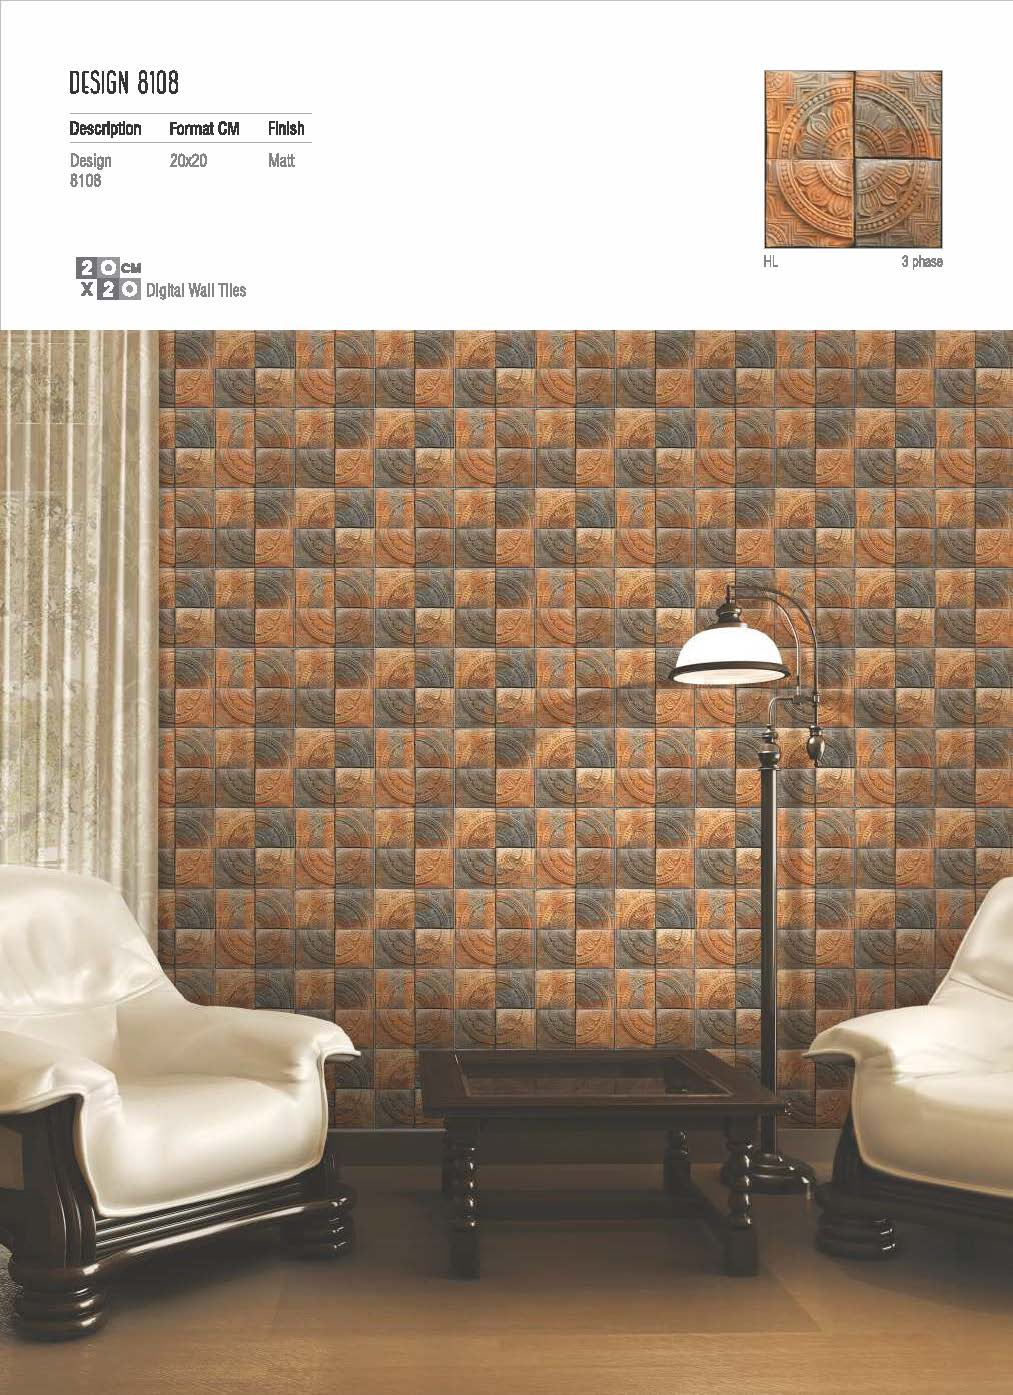 200 X 200 MM DIGITAL WALL TILES GLOSSY